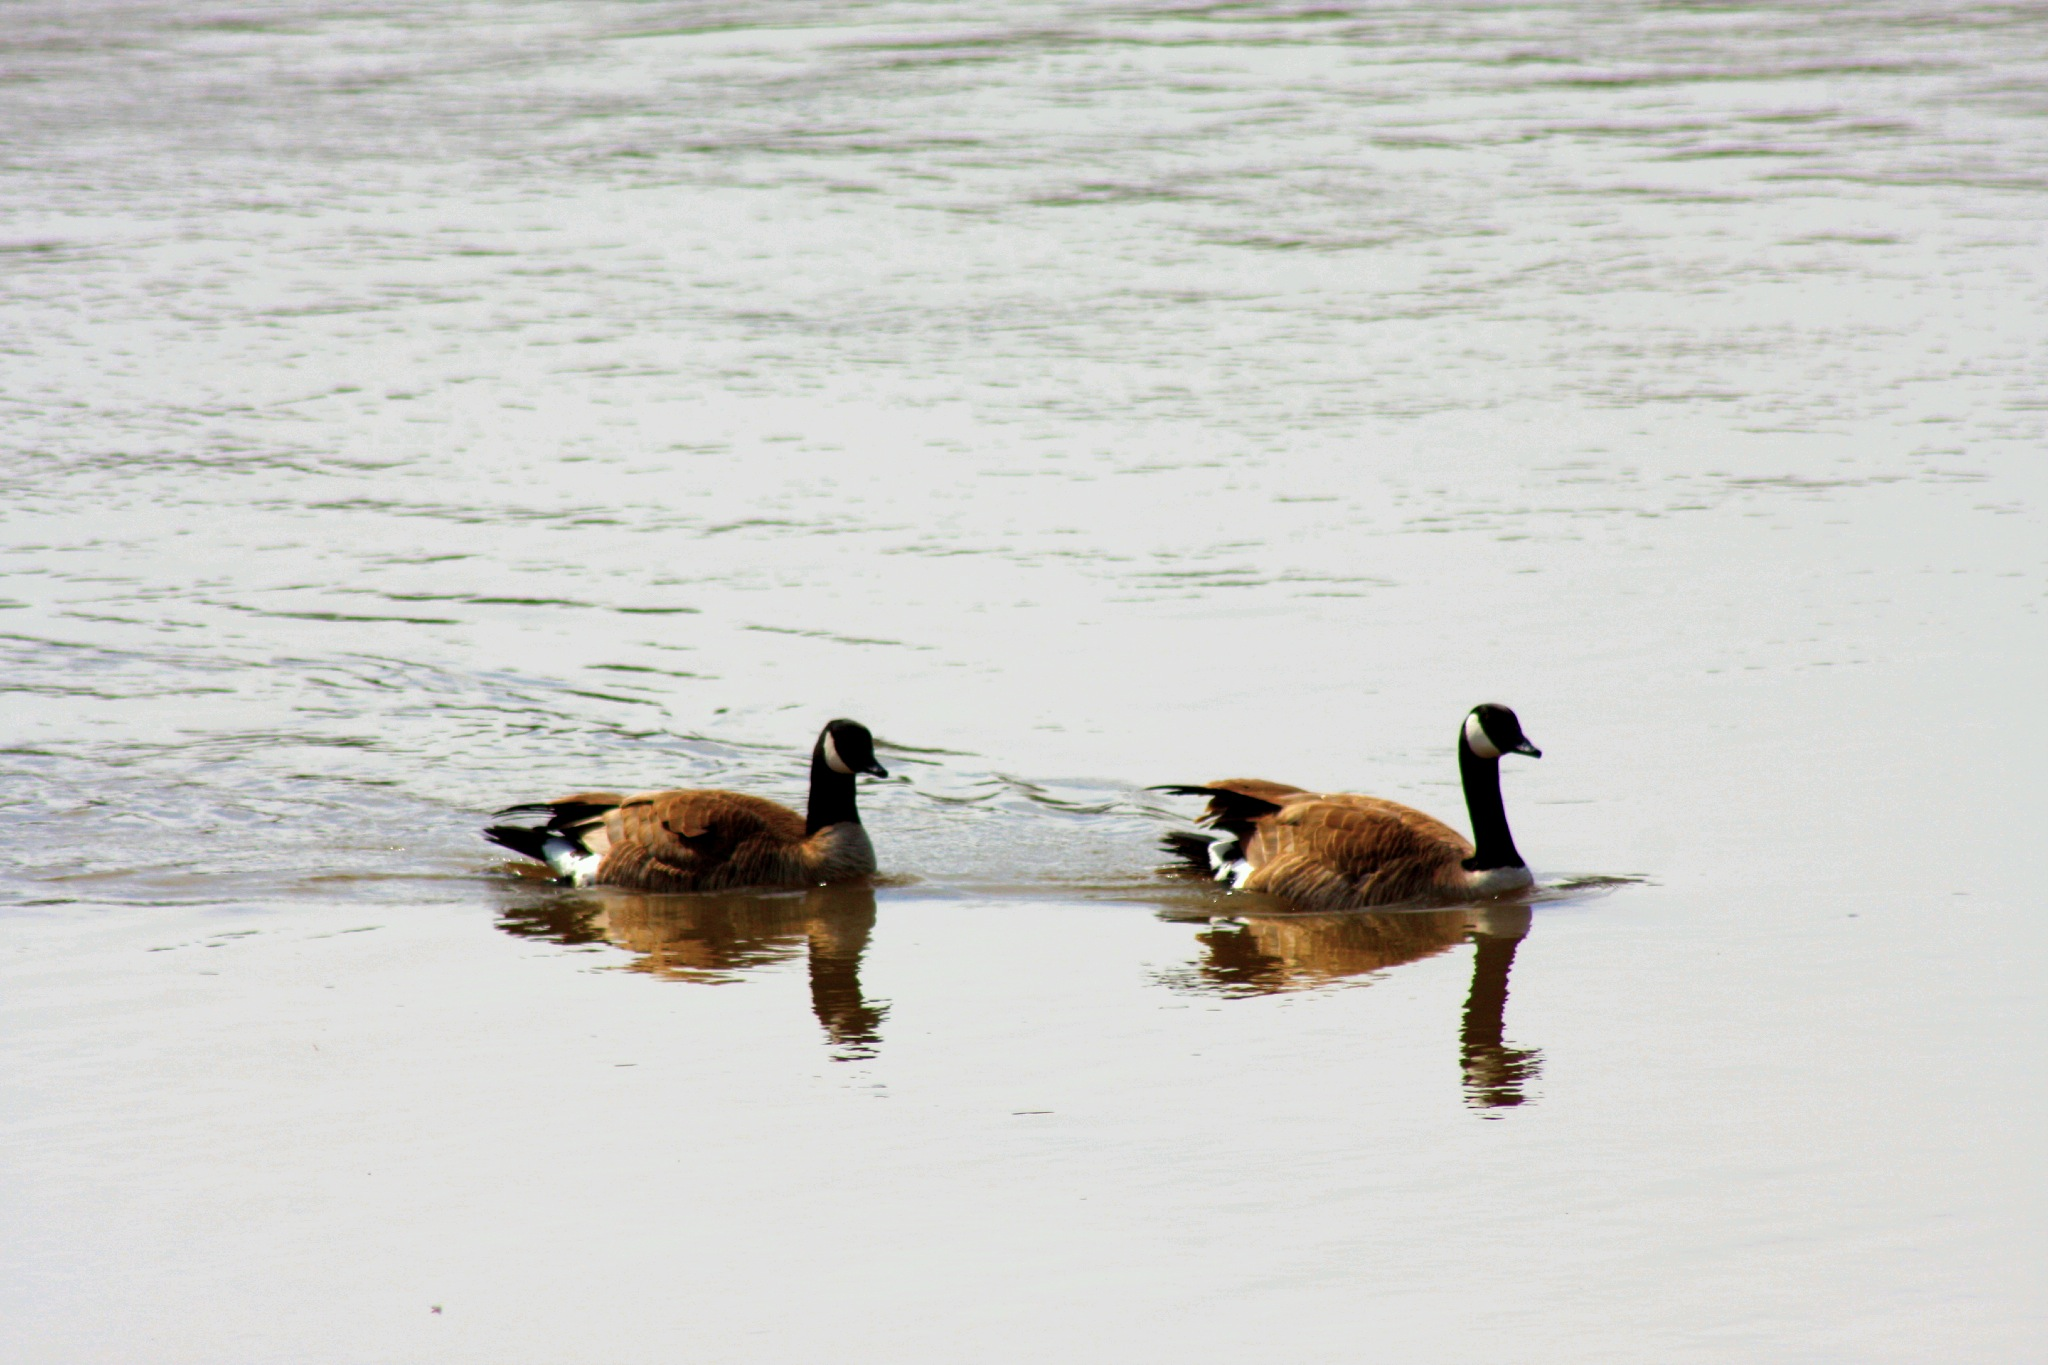 Geese Swimming On The River